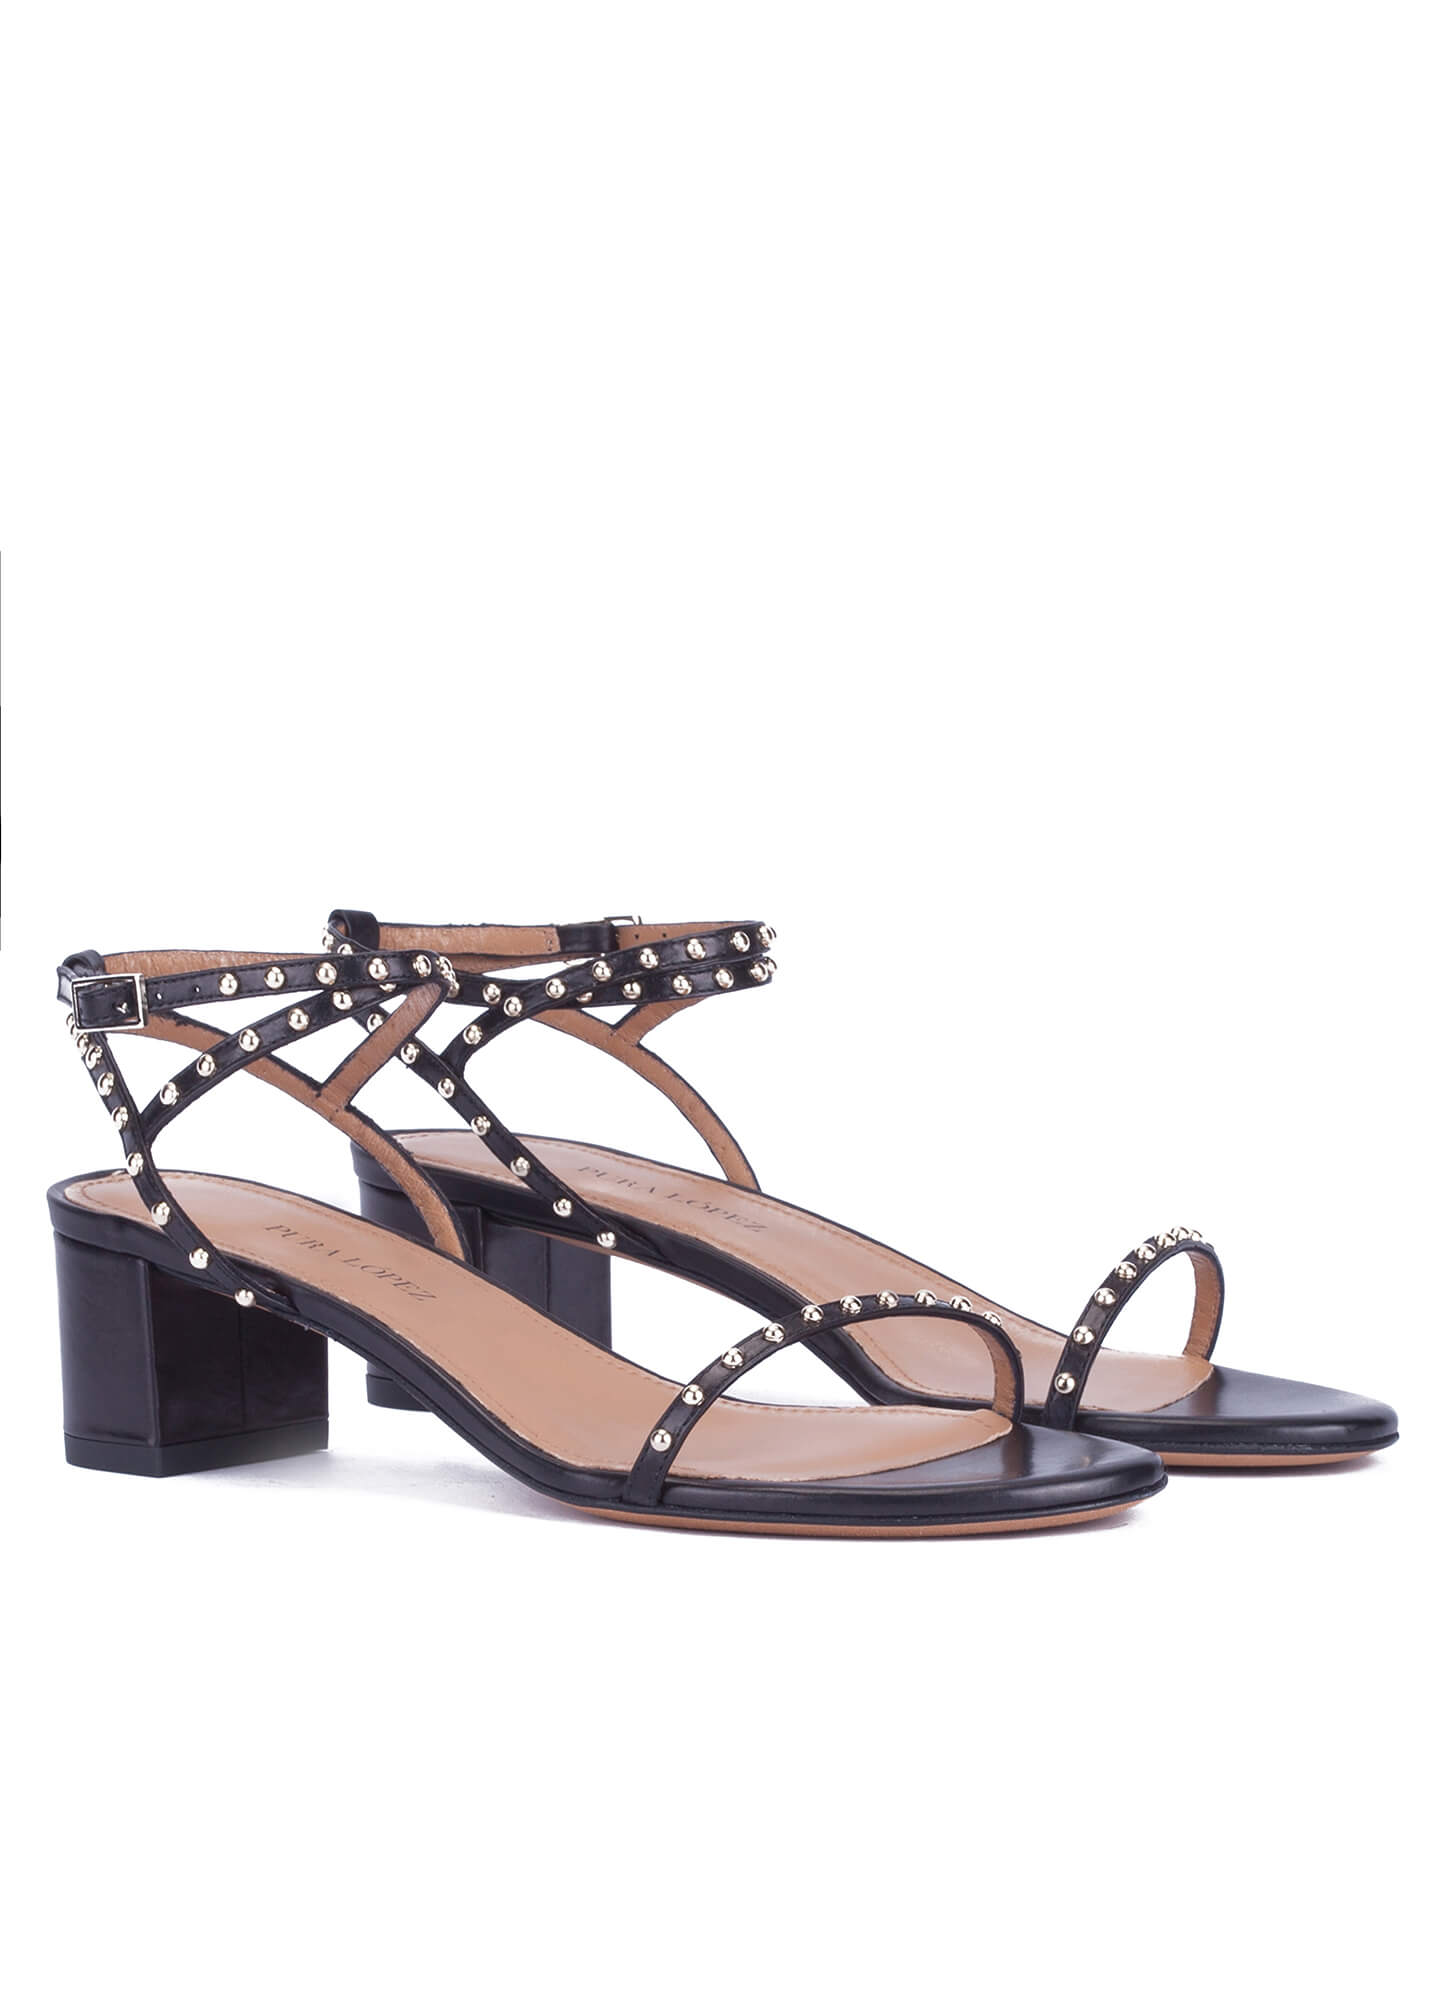 cae538e13dc Studded mid block heel sandals in black leather . PURA LOPEZ